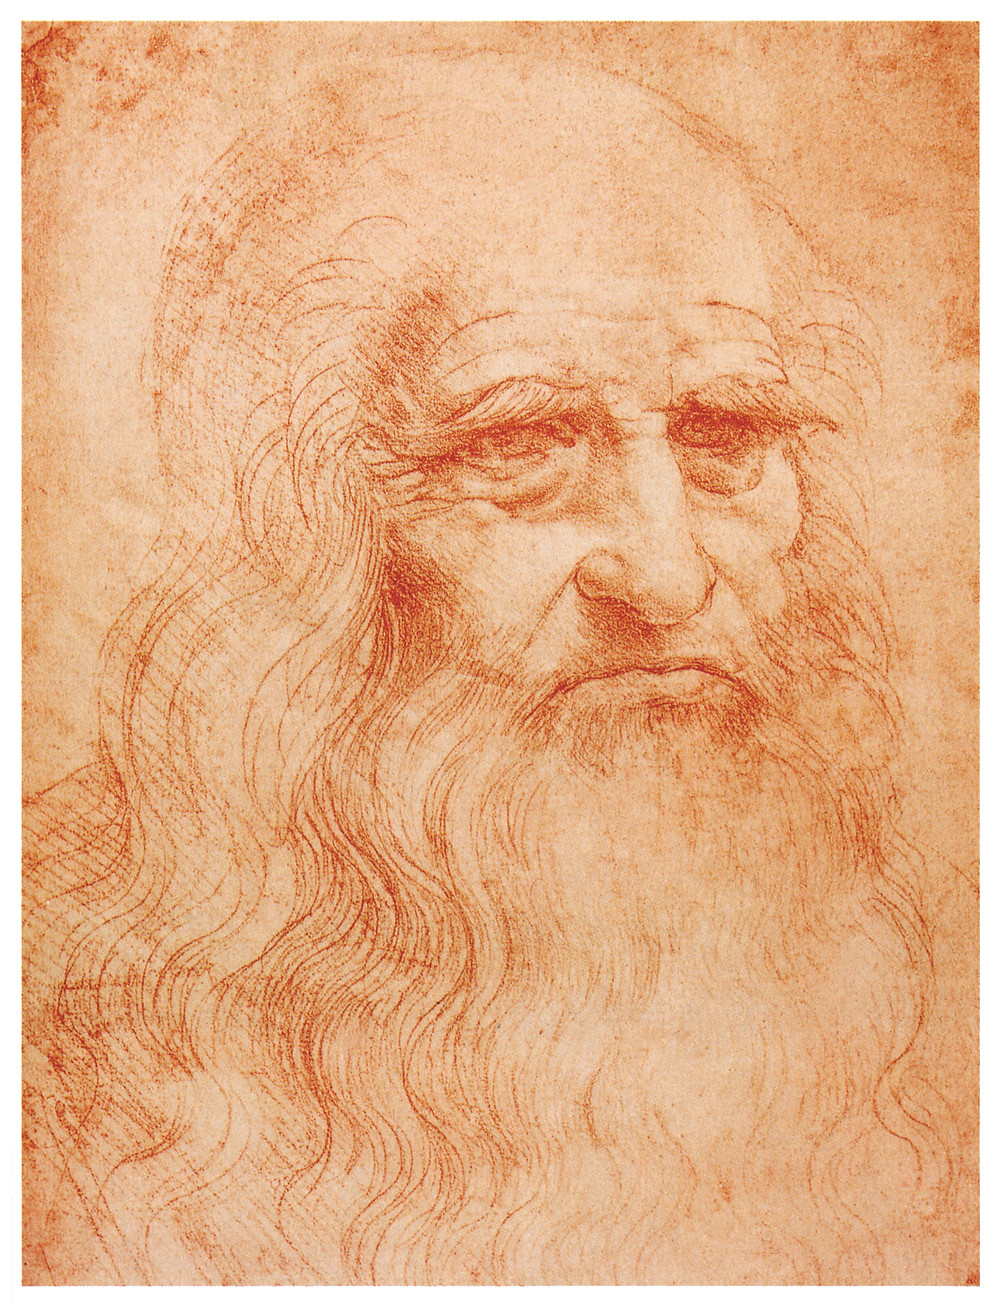 Leonardo da Vinci, Portrait of a Man in Red Chalk, 1512